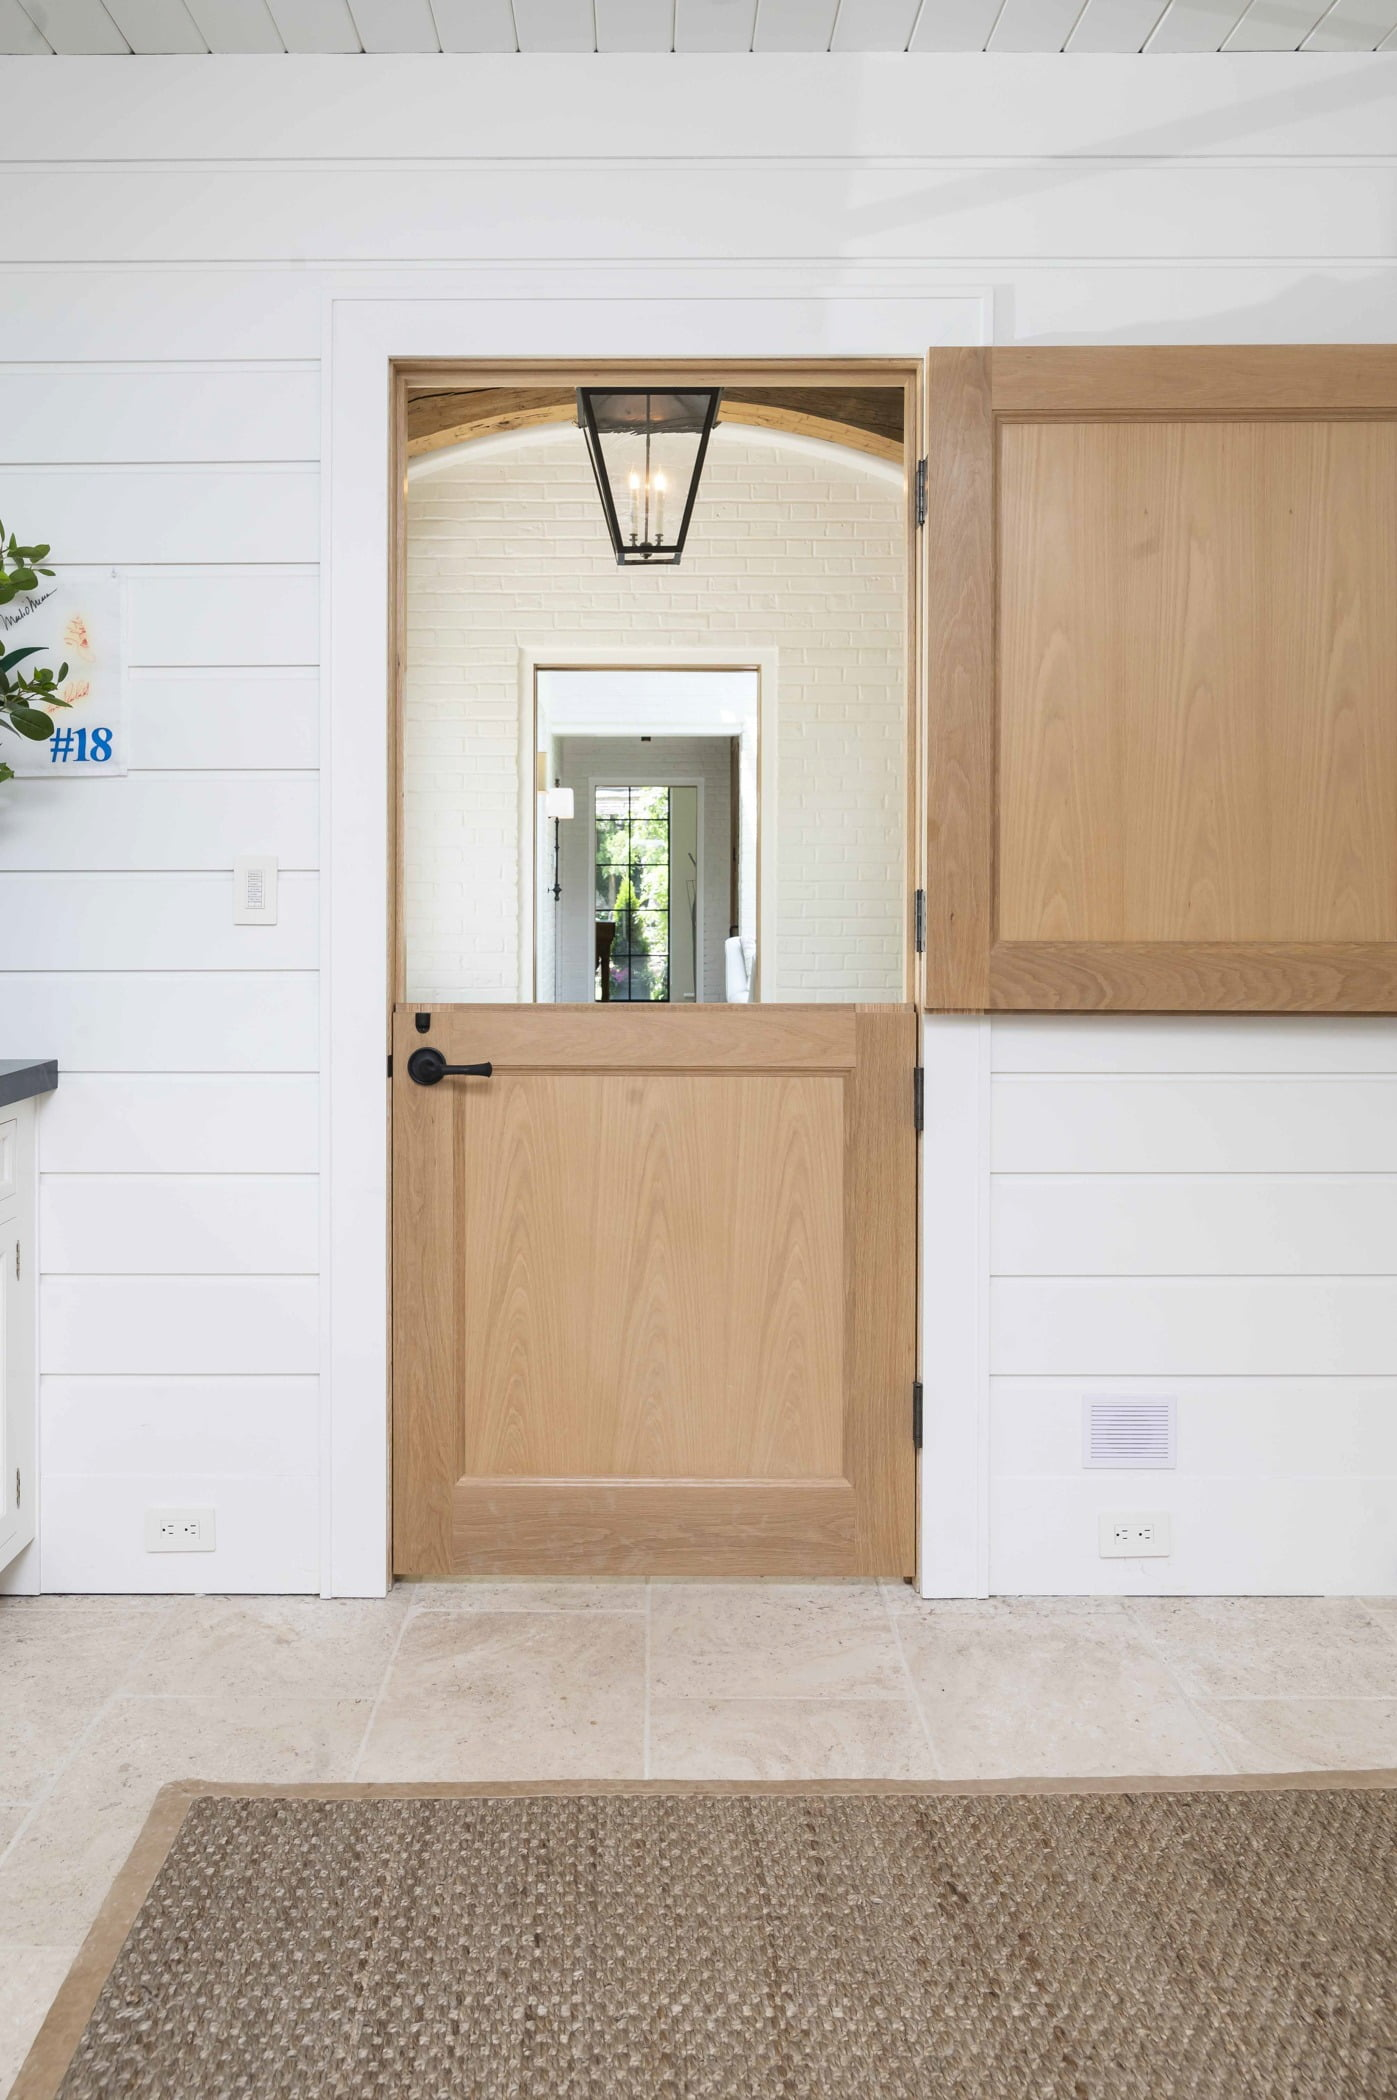 Transitional light hardwood interior dutch door with white panel walls and ceiling